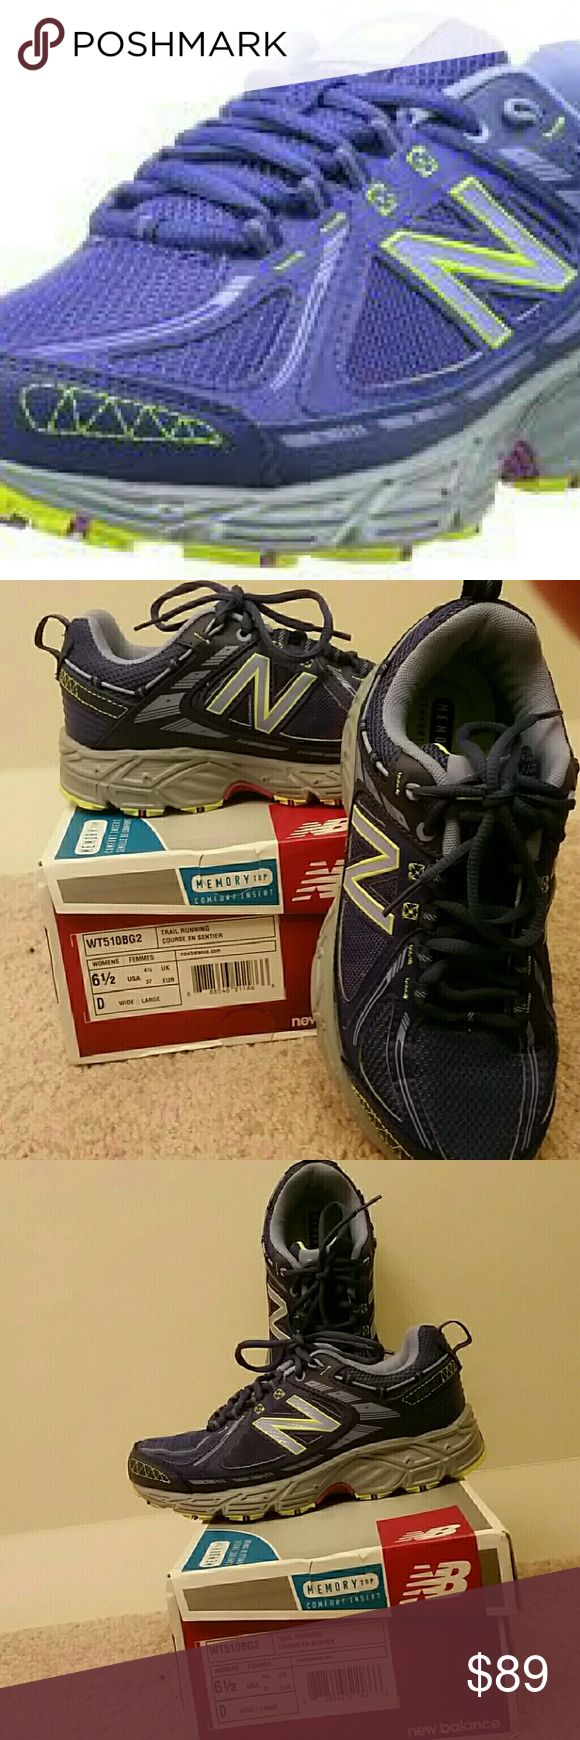 New balance sneakers 510v2 size 6.5 Wide NIB Purple New Balance trail running sneakers with yellow piping. Awesome shoes. Worn for about 5 minutes because my feet are challenging and I waited too long to return. This size and color are out of stock everywhere.  Size 6 1/2 WIDE. New in box only tried on on carpet. New Balance Shoes Sneakers